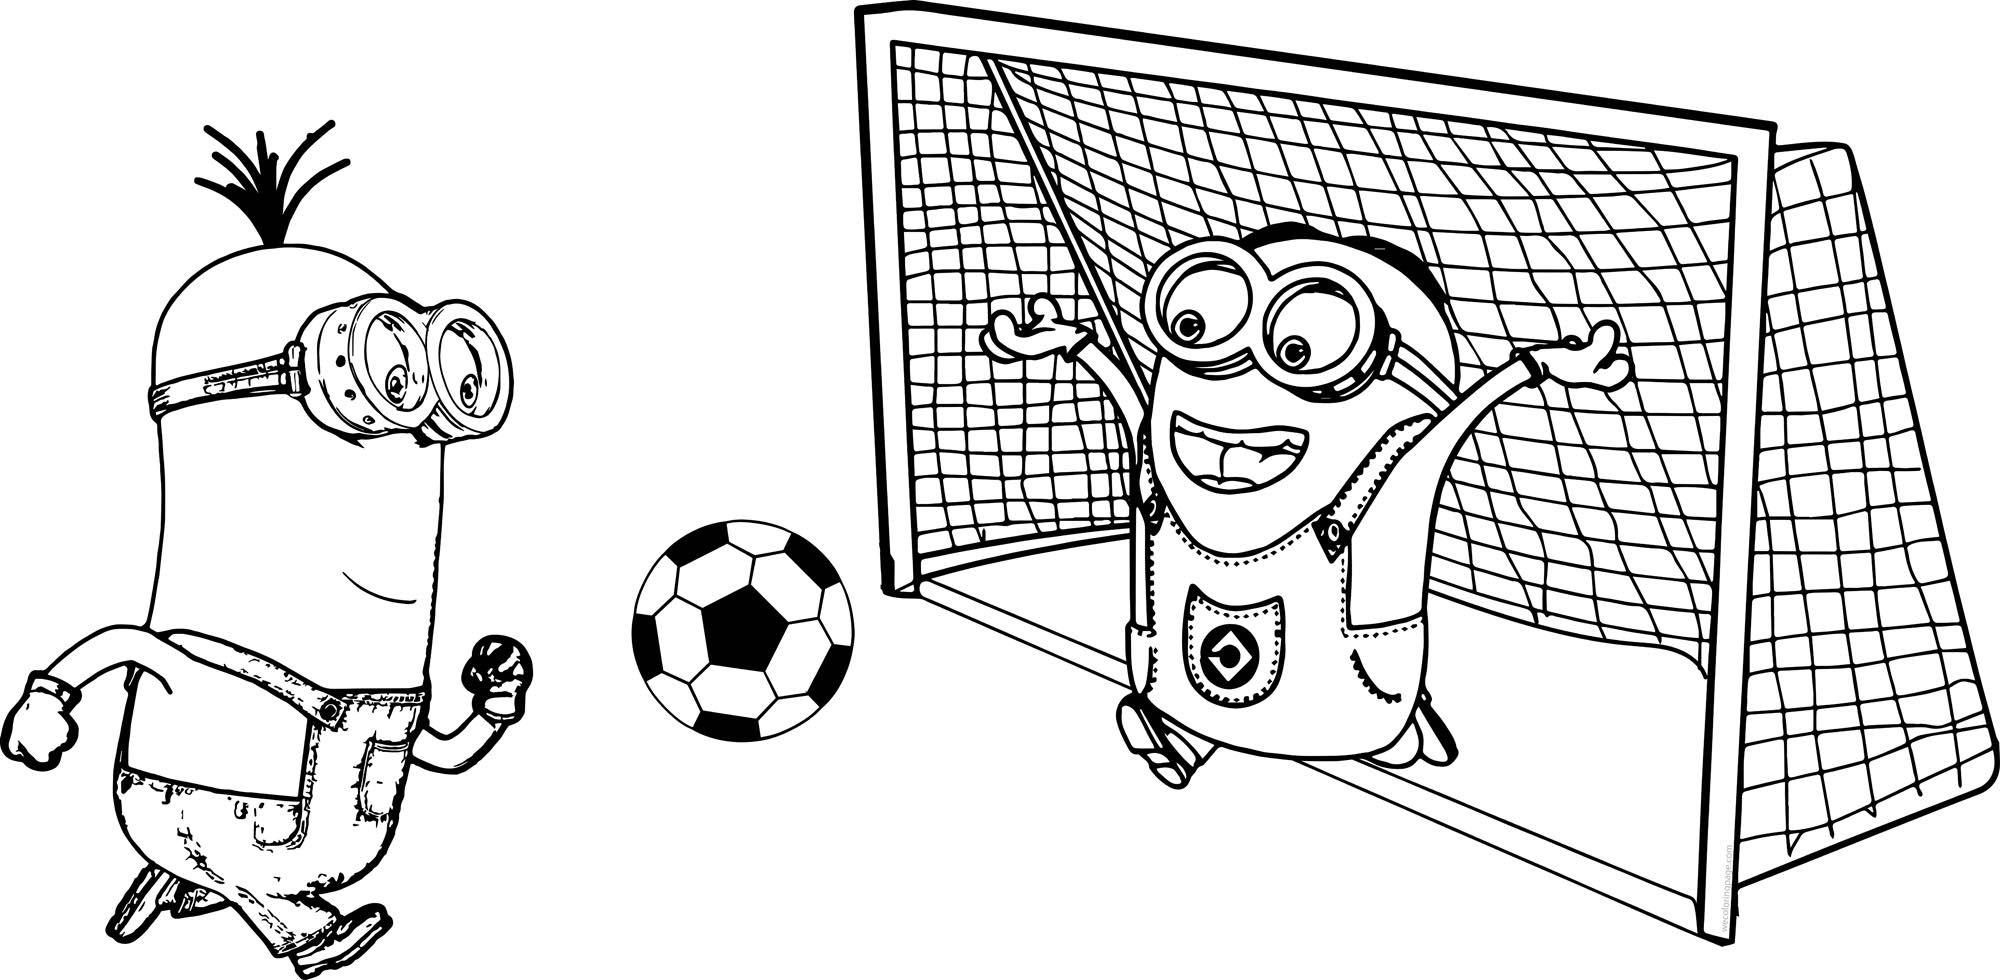 Cool Minion Kevin And Dave Playing Soccer Picture Coloring Page Baseball Coloring Pages Cartoon Coloring Pages Football Coloring Pages [ 980 x 2000 Pixel ]